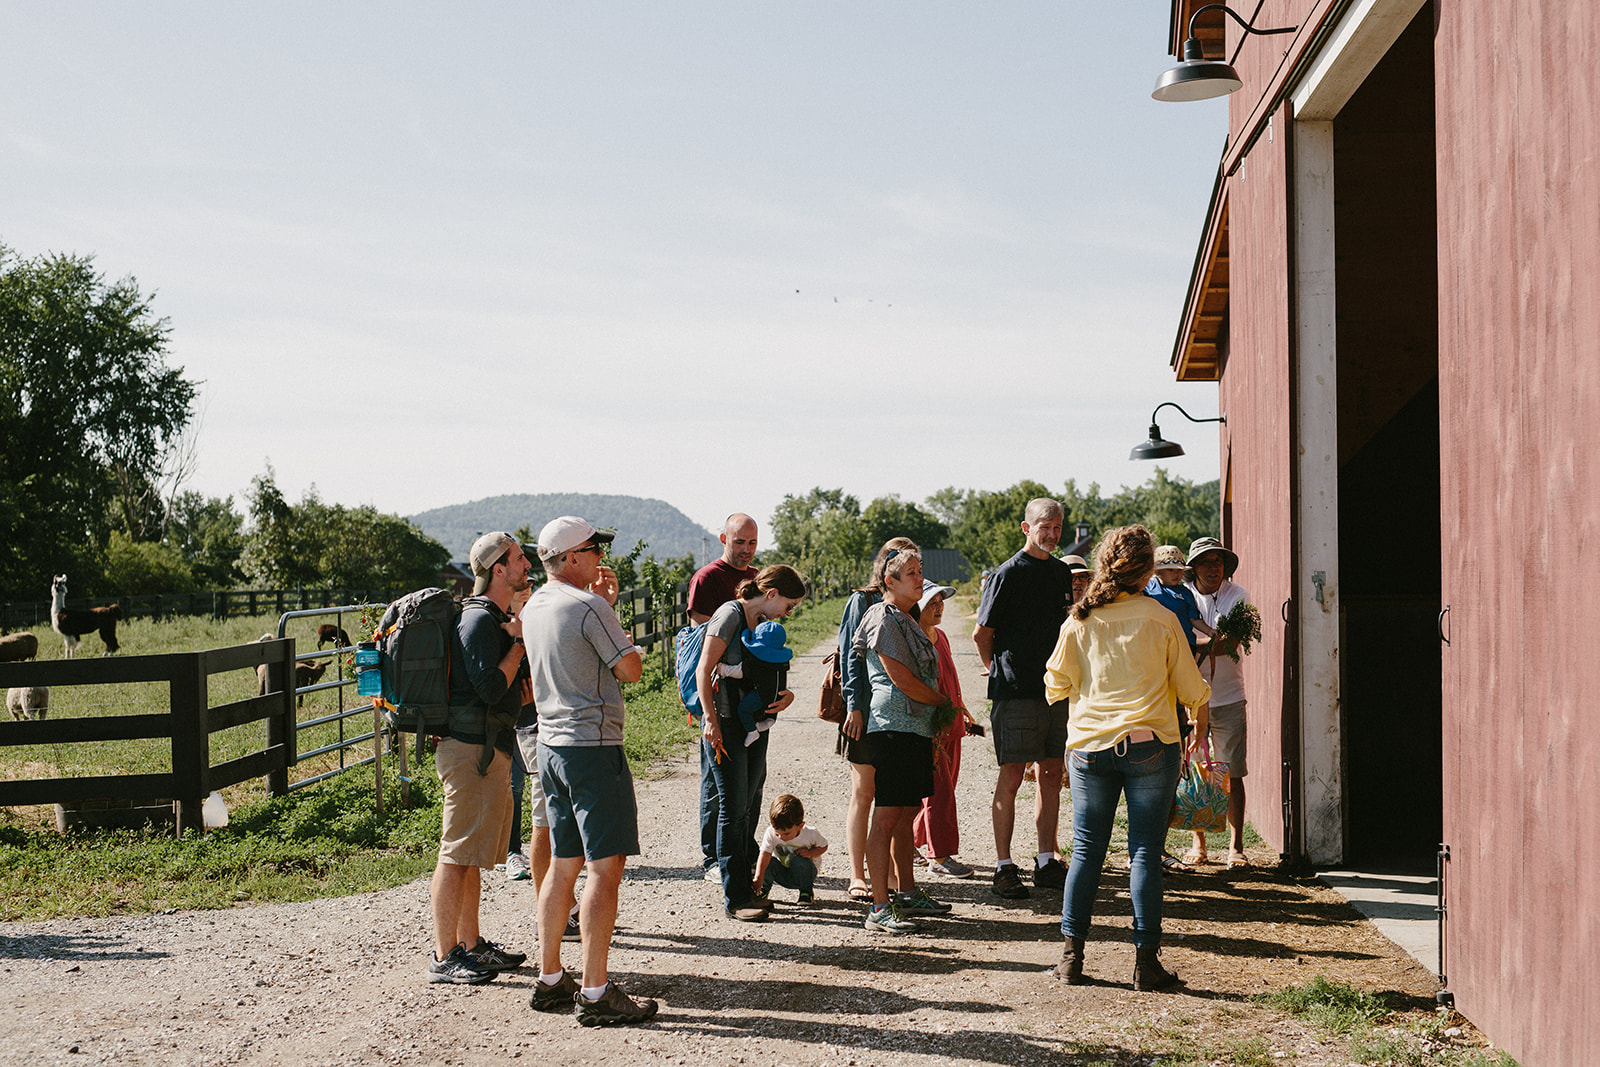 Visitors learn about the Pack Barn during a tour of Philo Ridge Farm. Photo by Kelly Dudash.